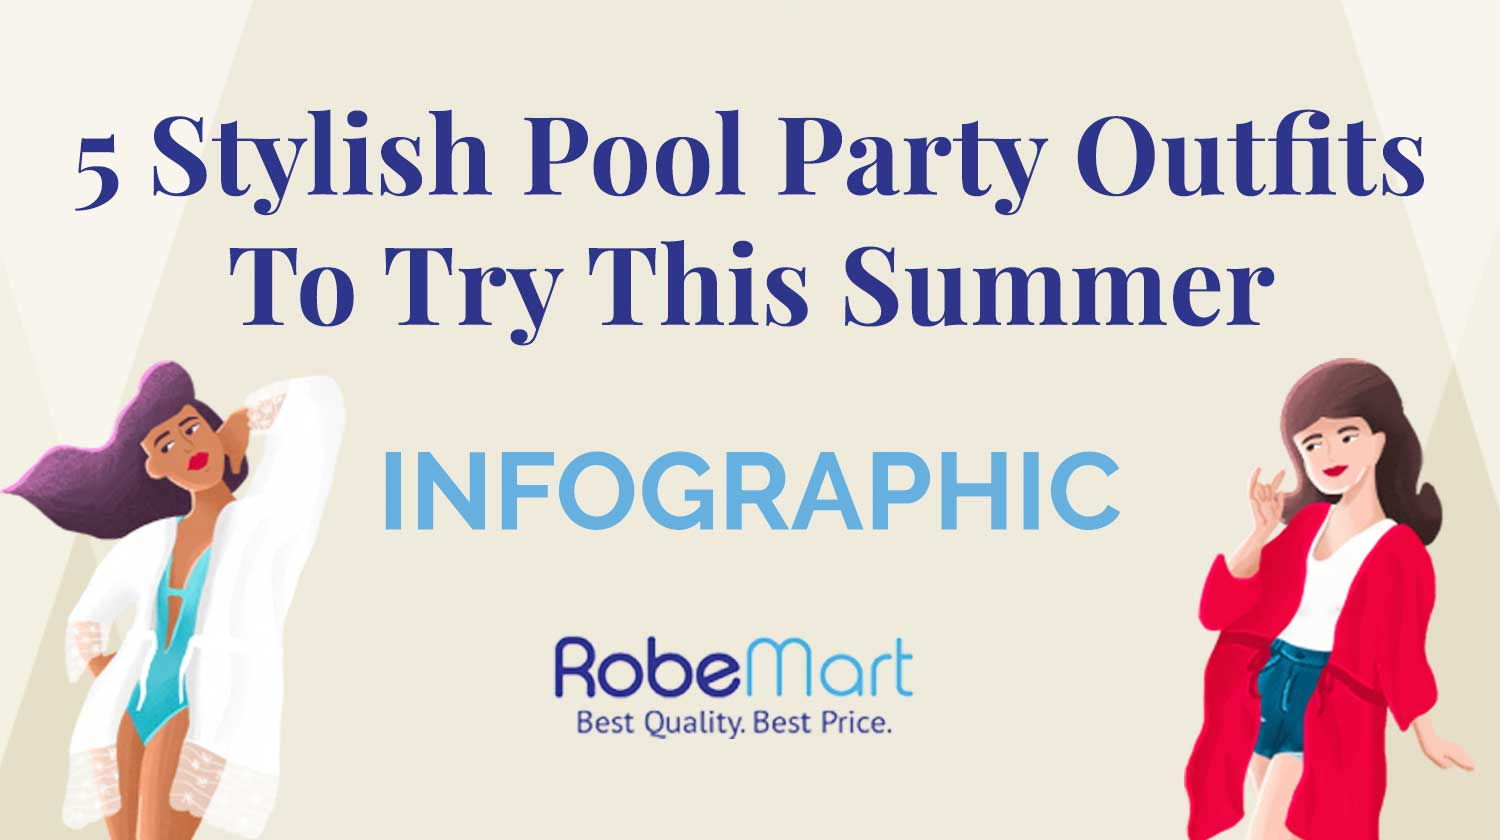 5 Stylish Pool Party Outfits To Try This Summer